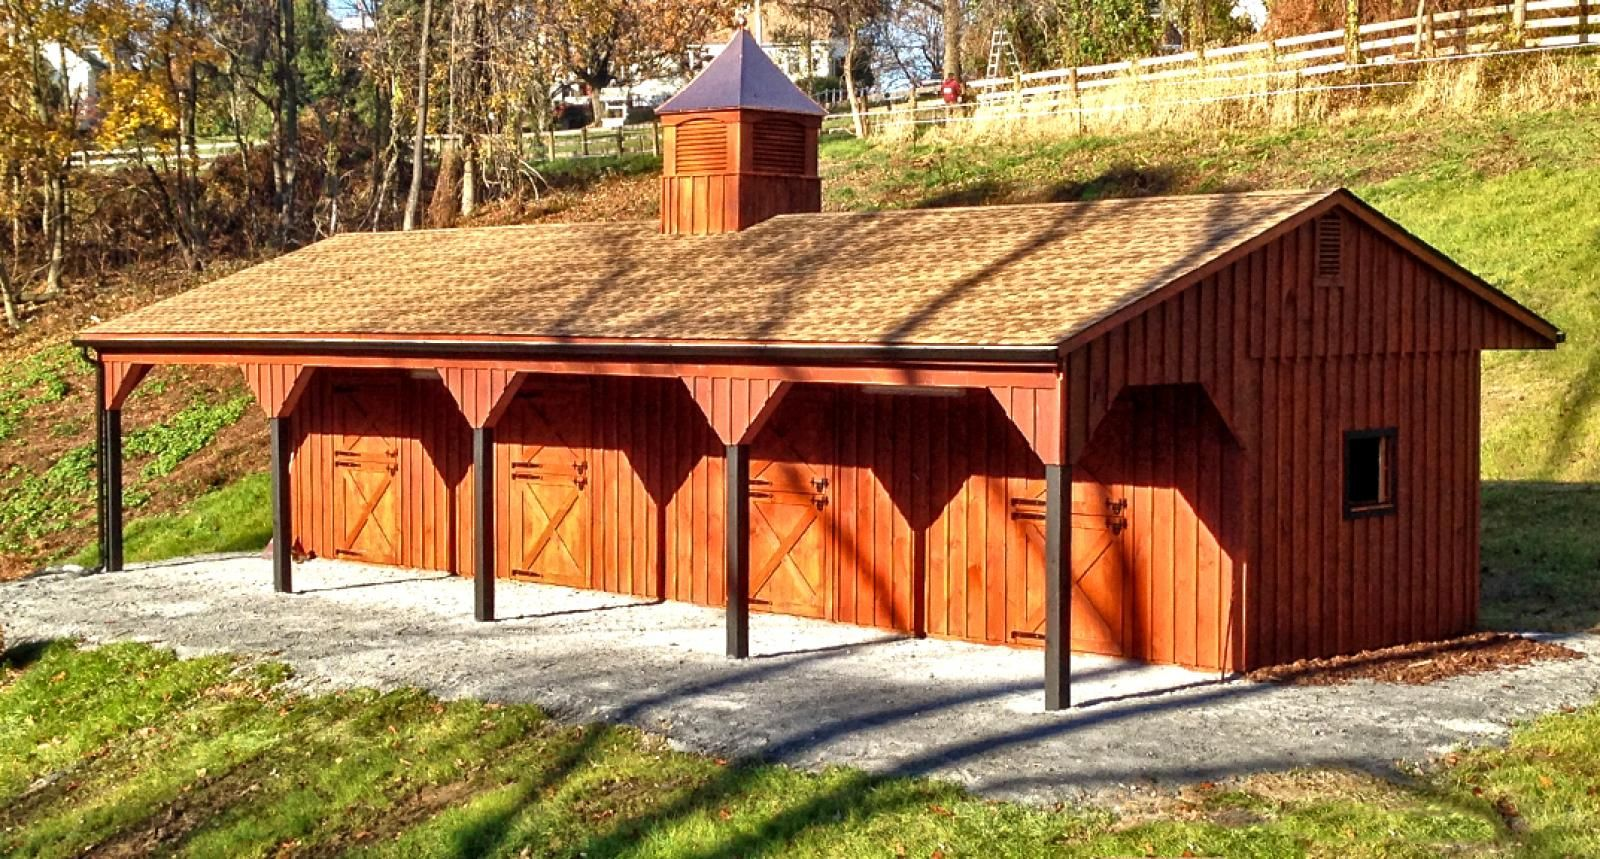 horse-barns-shed-row-in-12x48-with-8-foot-overhang-front-and-4-foot-overhang-in-the-back_1.jpg 1,600×859 pixels